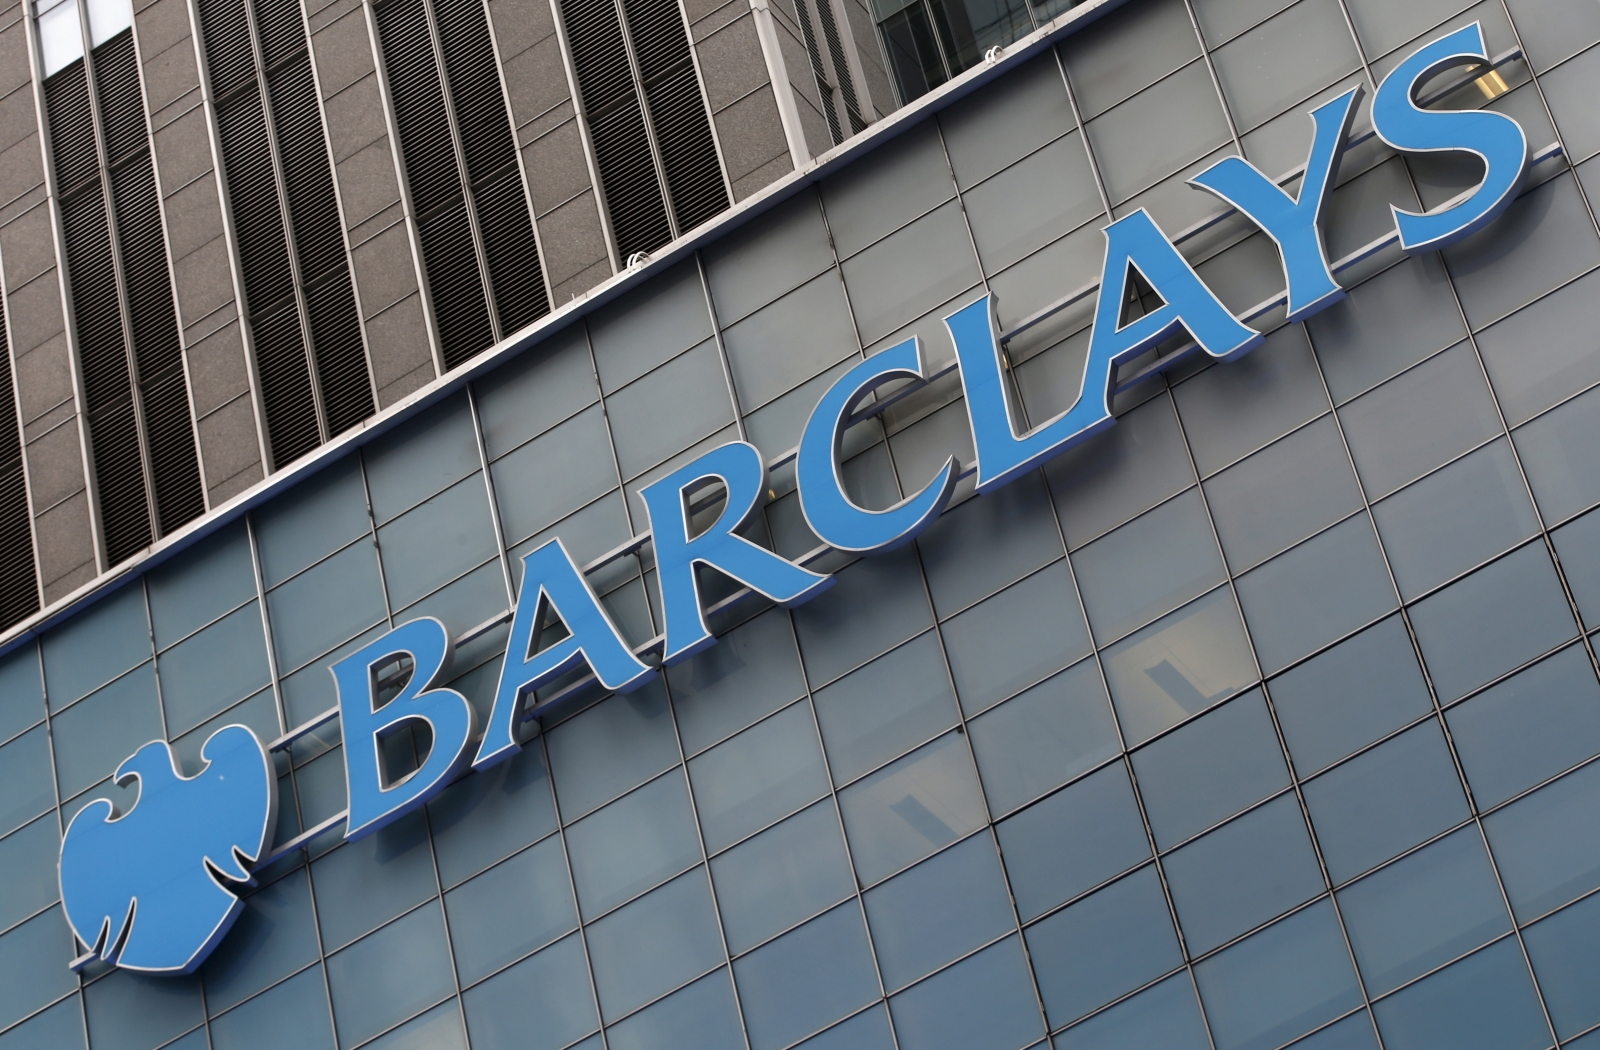 Barclays phone banking service to replace passwords with voice recognition